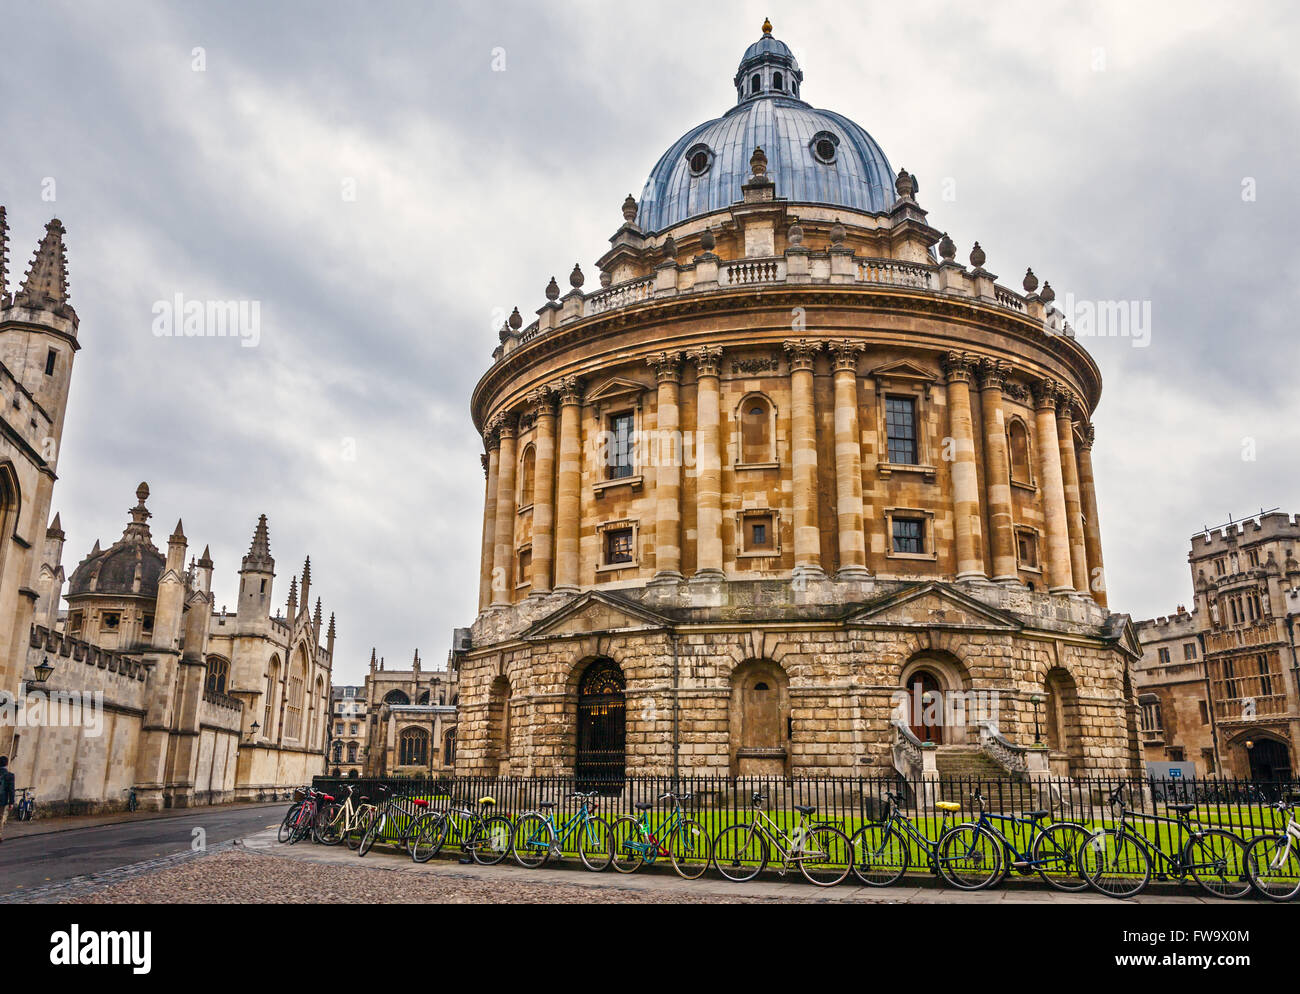 Radcliffe Camera Building, Oxford UK - Stock Image